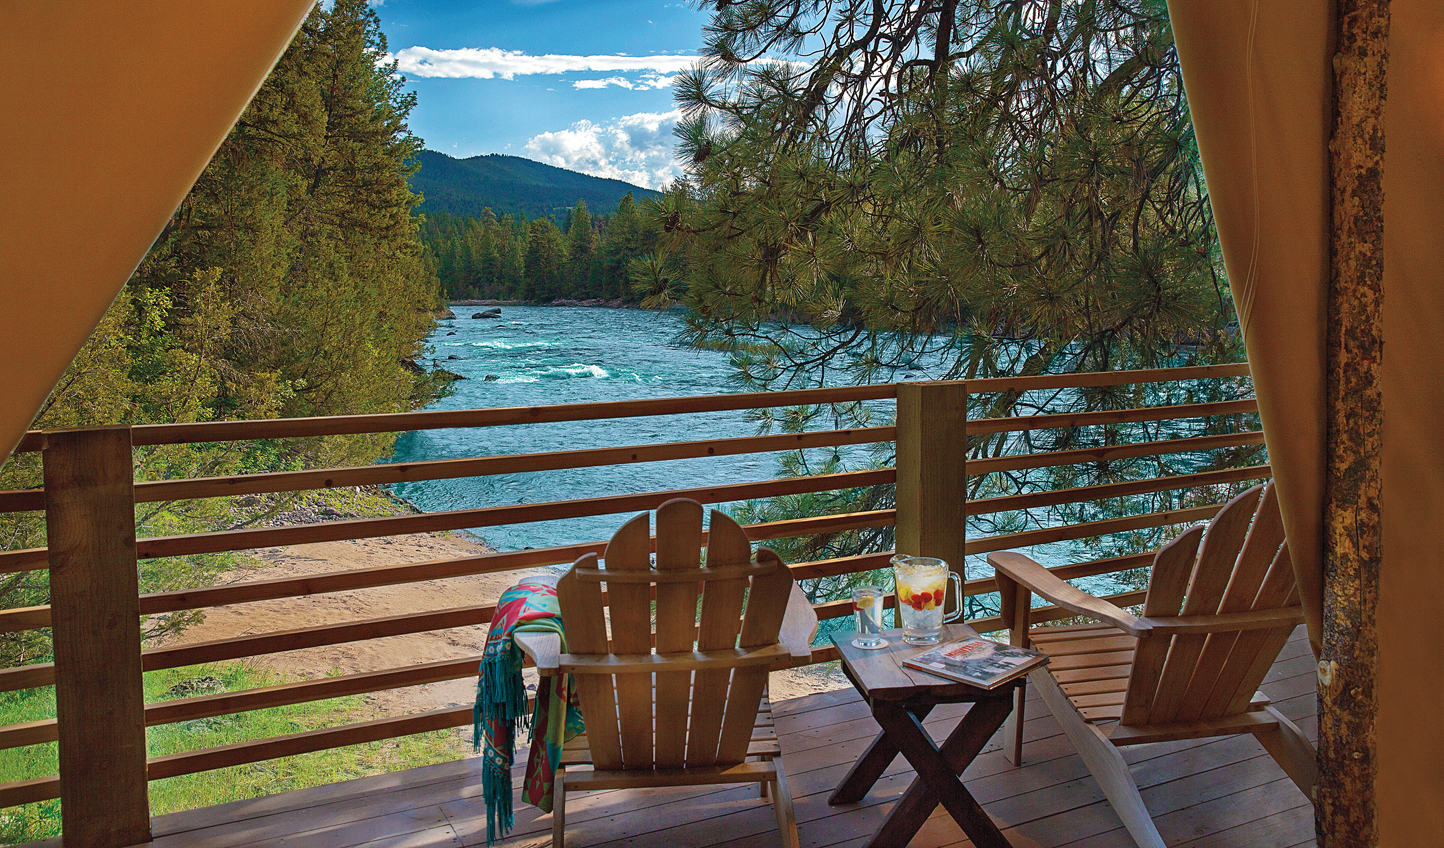 Enjoy beautiful views of Blackfoot River right from your tent at the River Camp